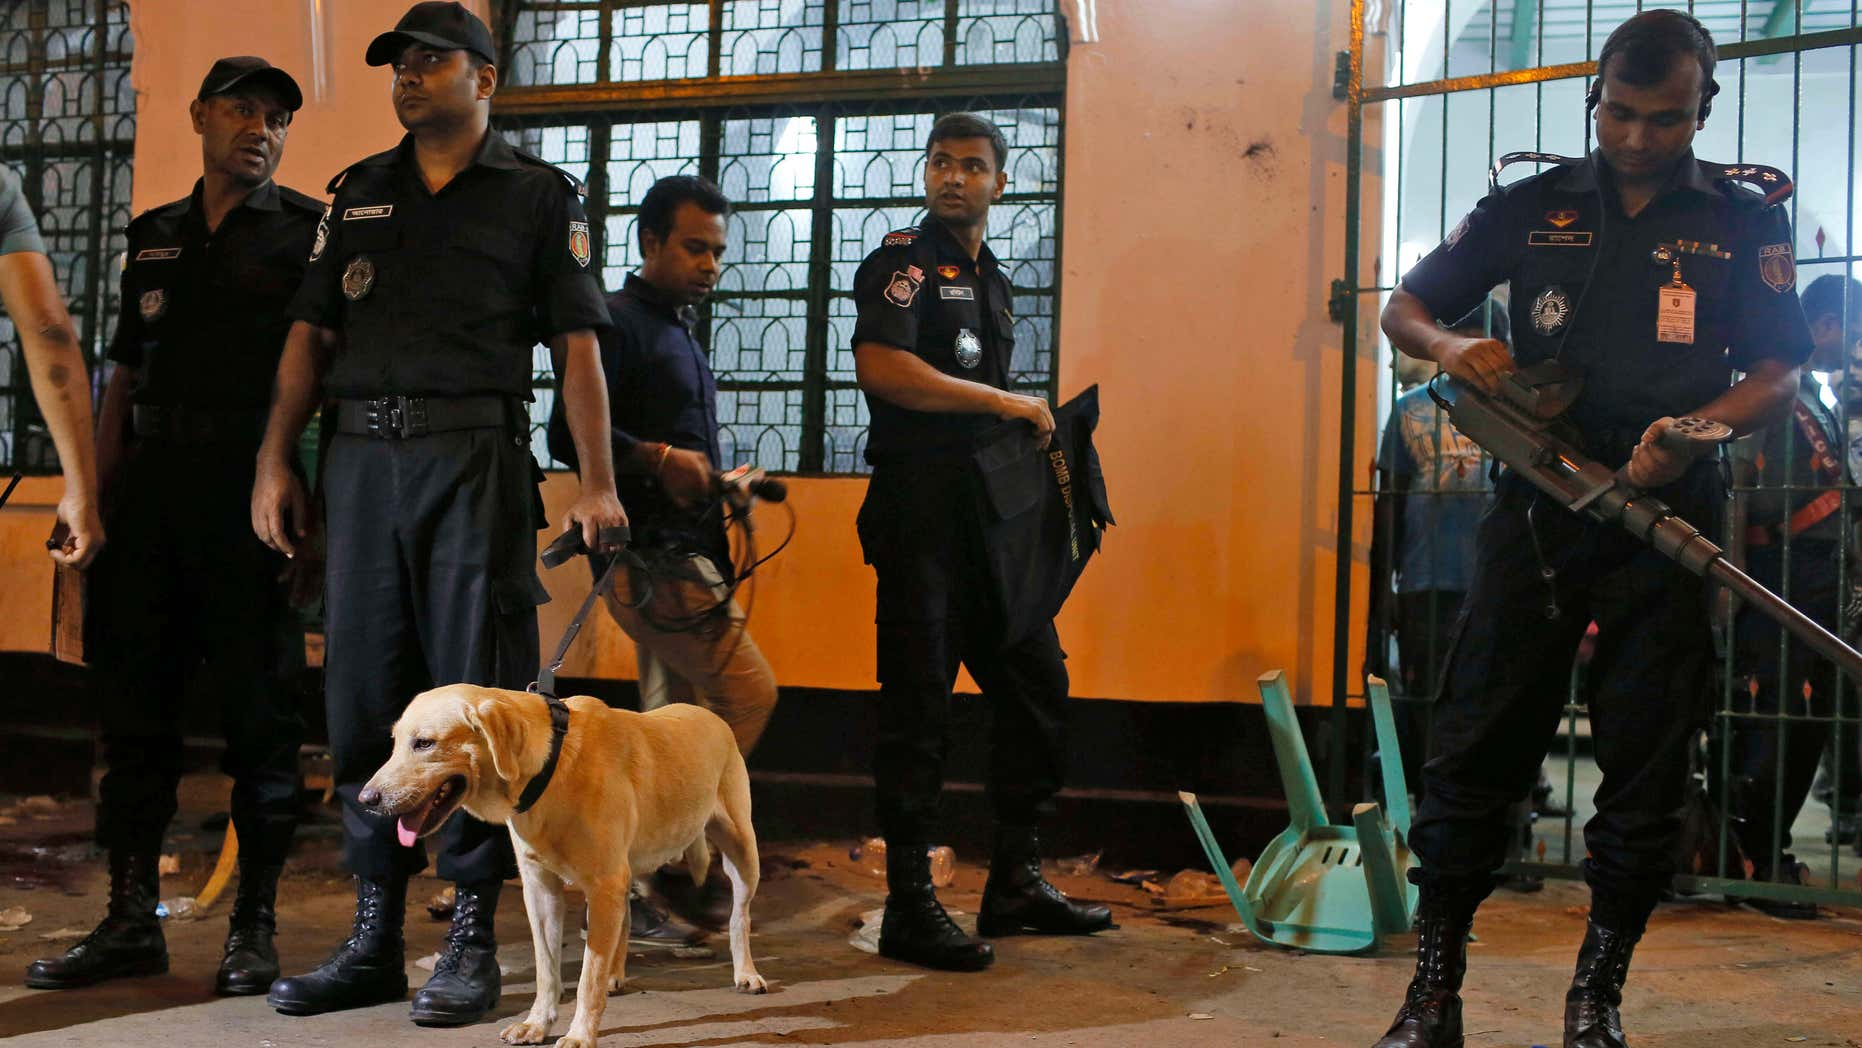 Oct. 24, 2015: Bangladeshi security personnel stand with a sniffer dog at the site of an explosion in Dhaka, Bangladesh.